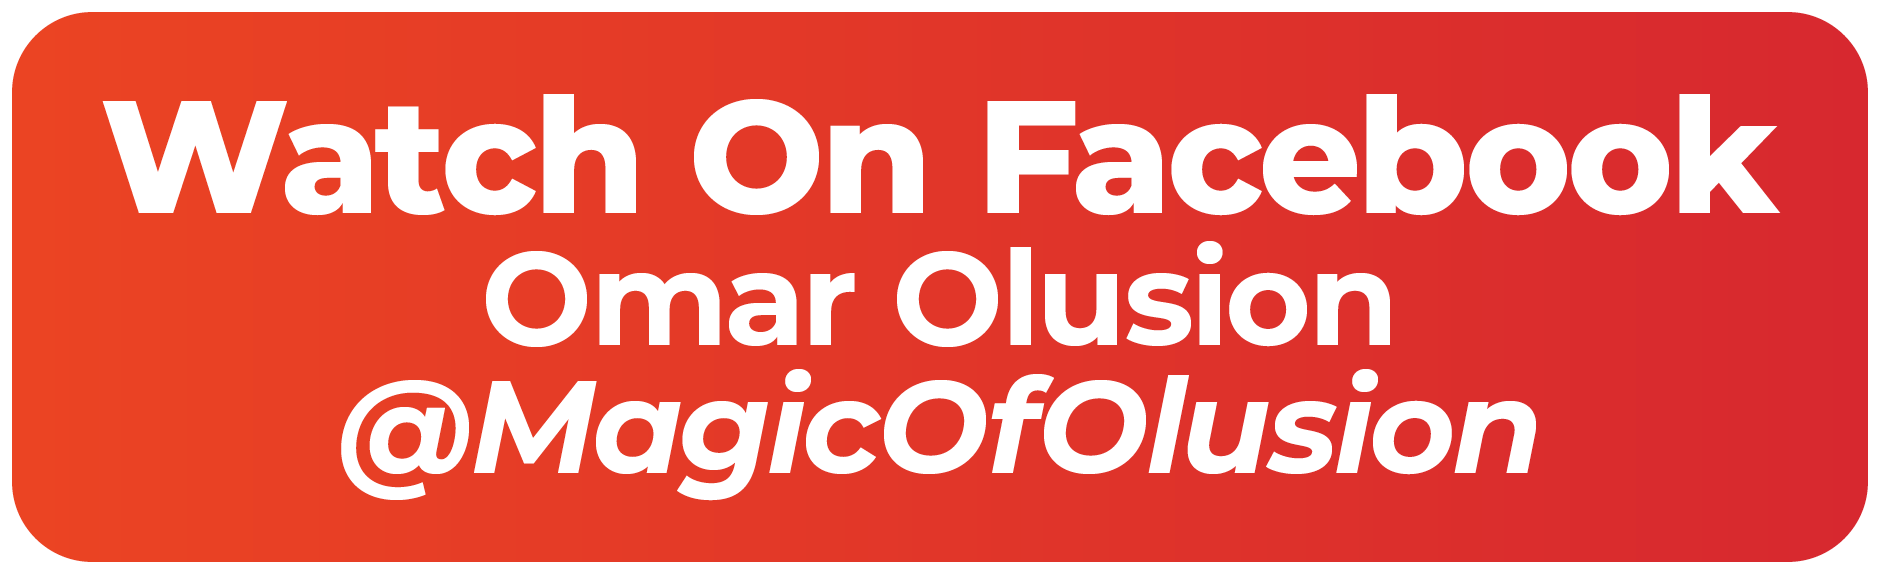 Click or tap here to follow or watch Omar Olusion on Facebook.